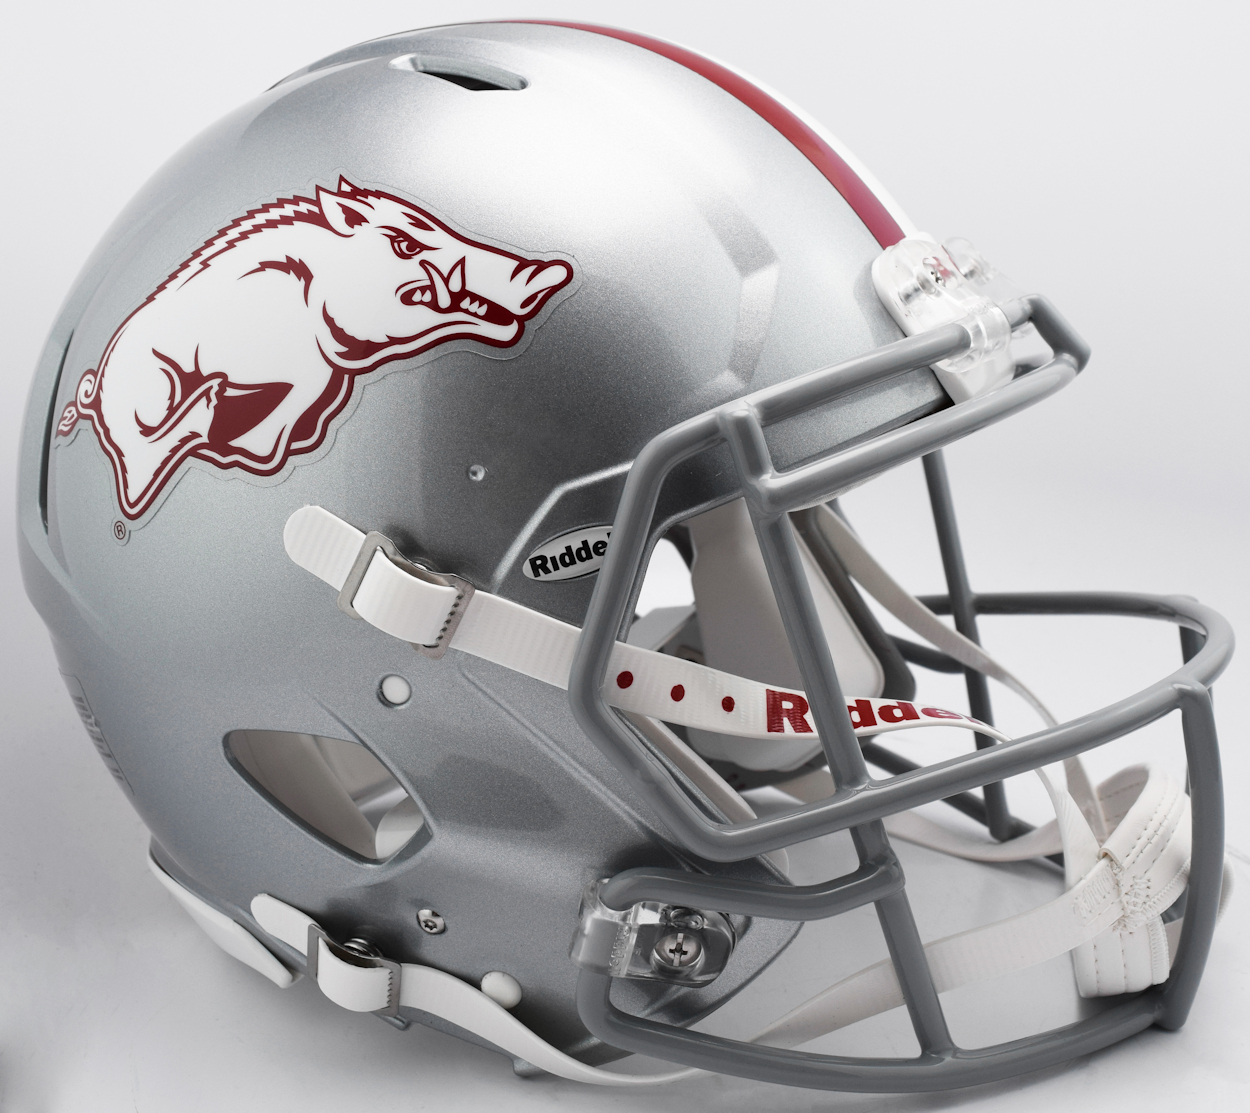 Arkansas Razorbacks Speed Football Helmet <B>2017 Silver w/gray mask</B>